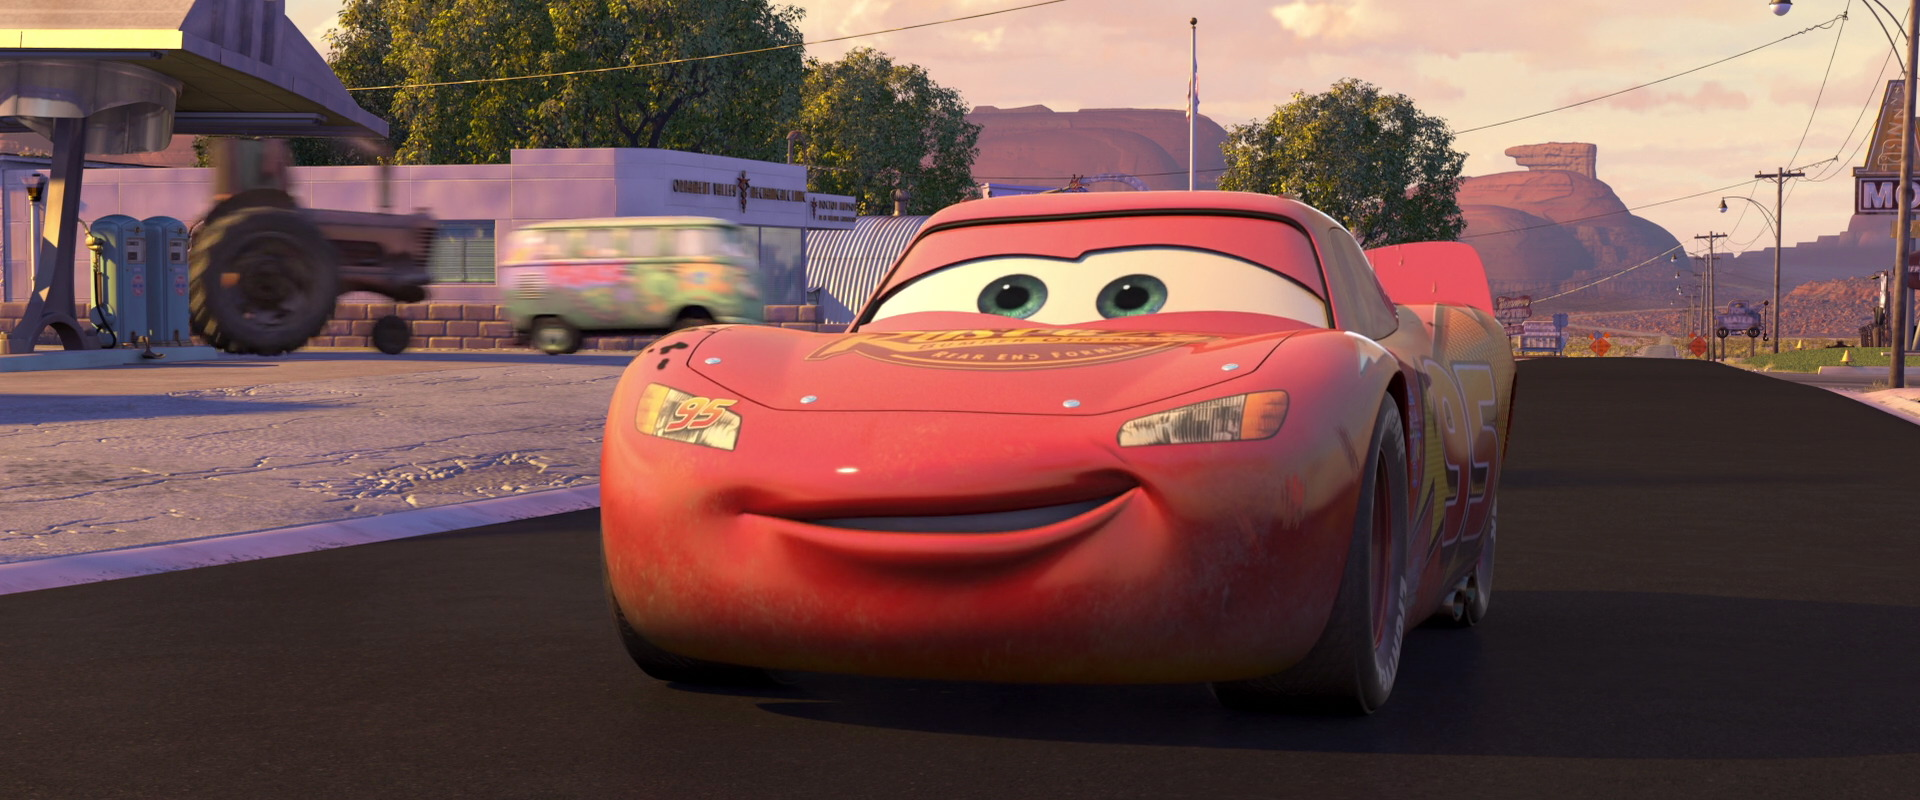 when mcqueen realises he will not be done in time he gets a move on to finish paving the road but it turns out looking even worse than it did before - Mcqueen Flash Mcqueen